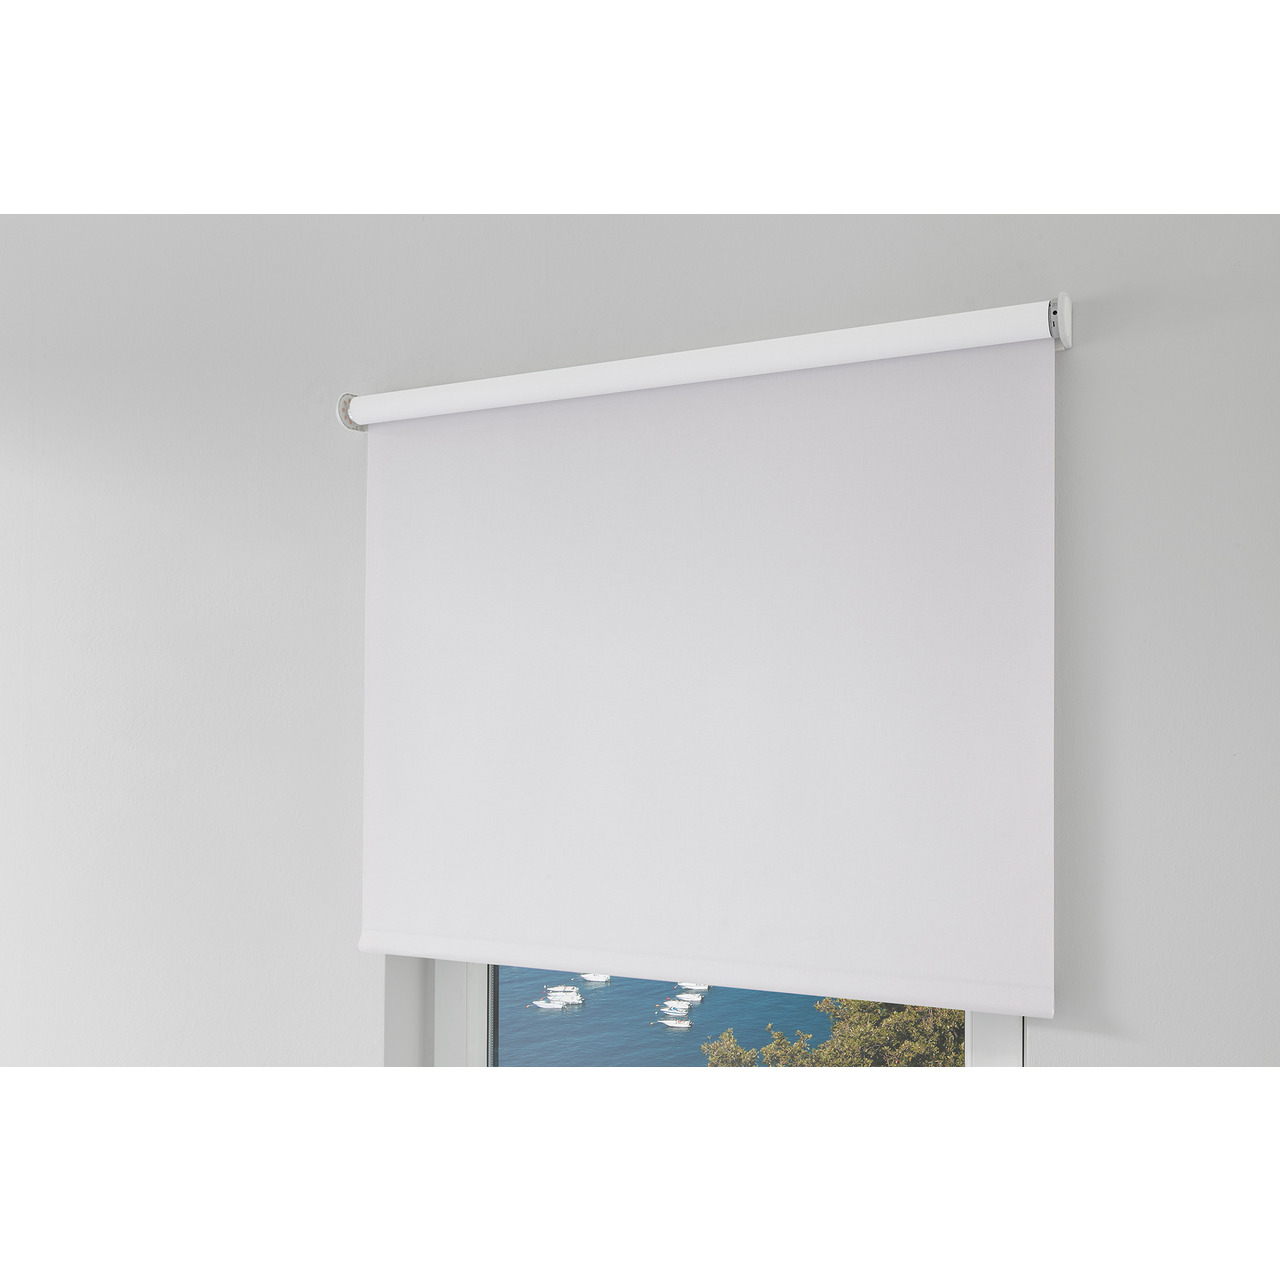 Erfal Smartcontrol Rollo by Homematic IP- 140 x 230 cm (B x H)- blickdicht abdunkelnd weiss